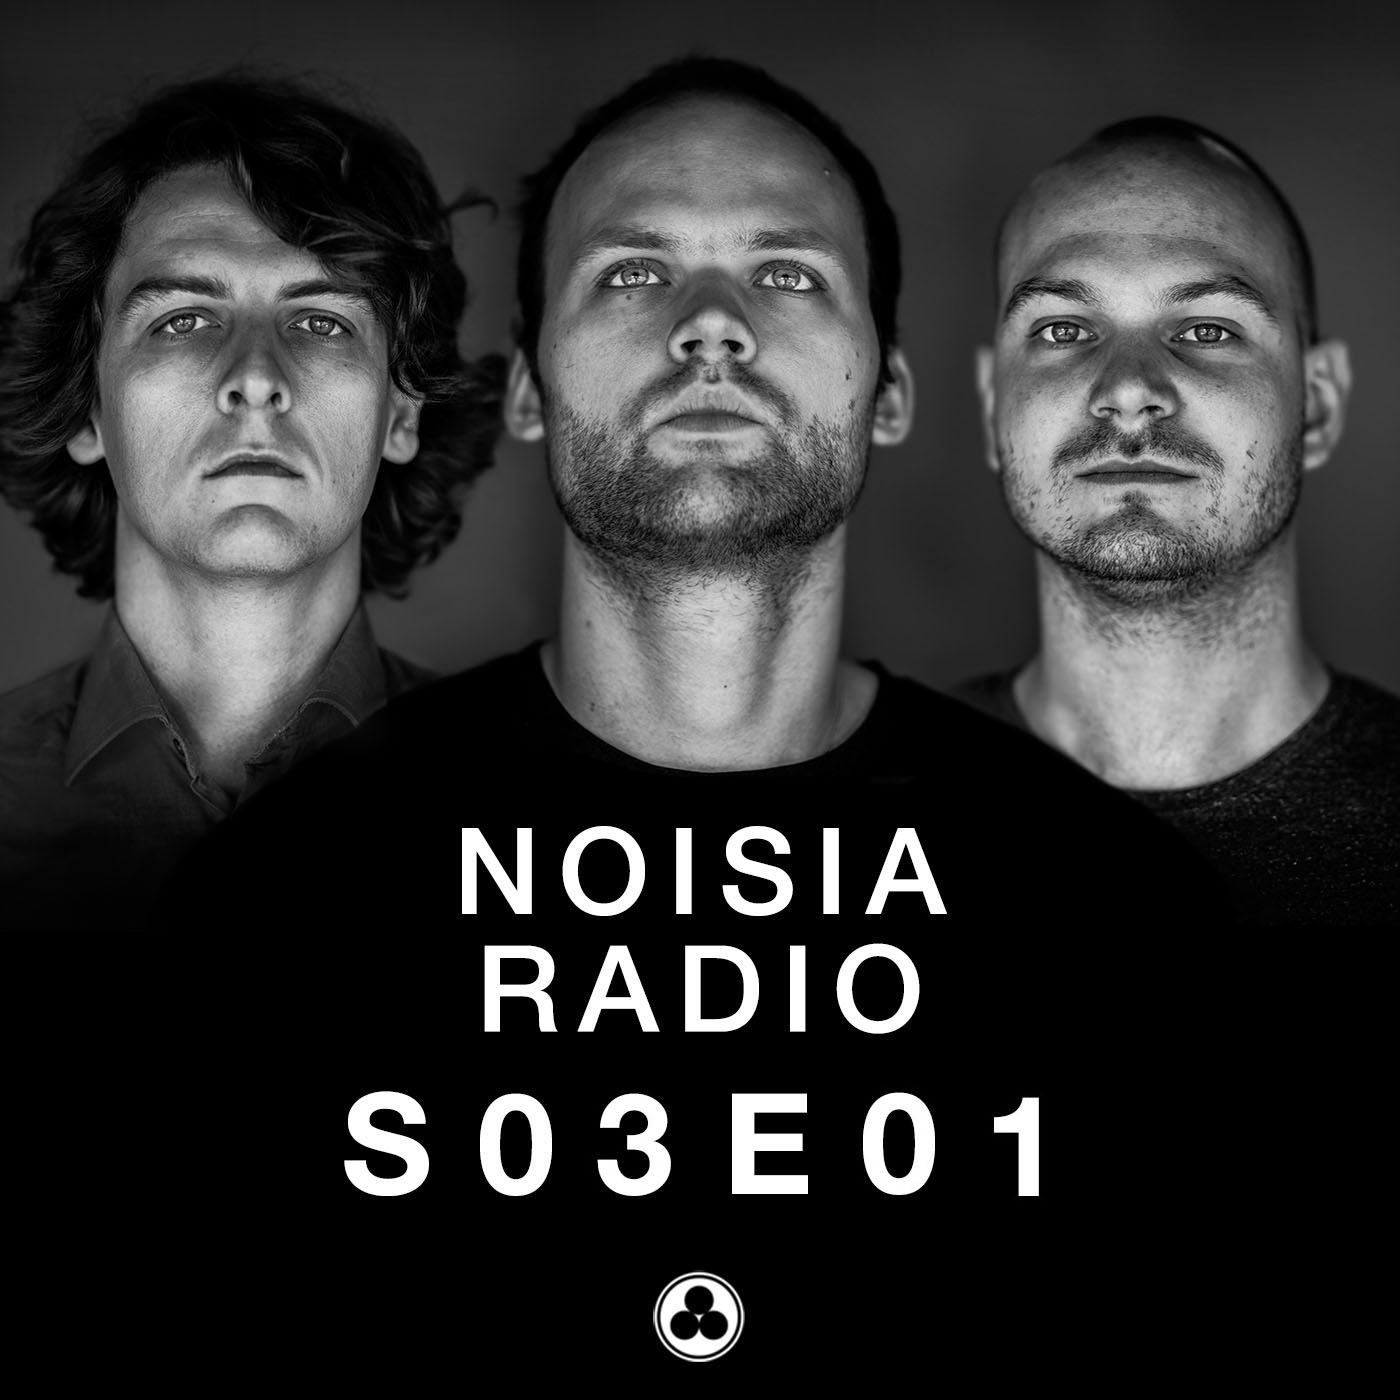 Noisia Radio S03E01